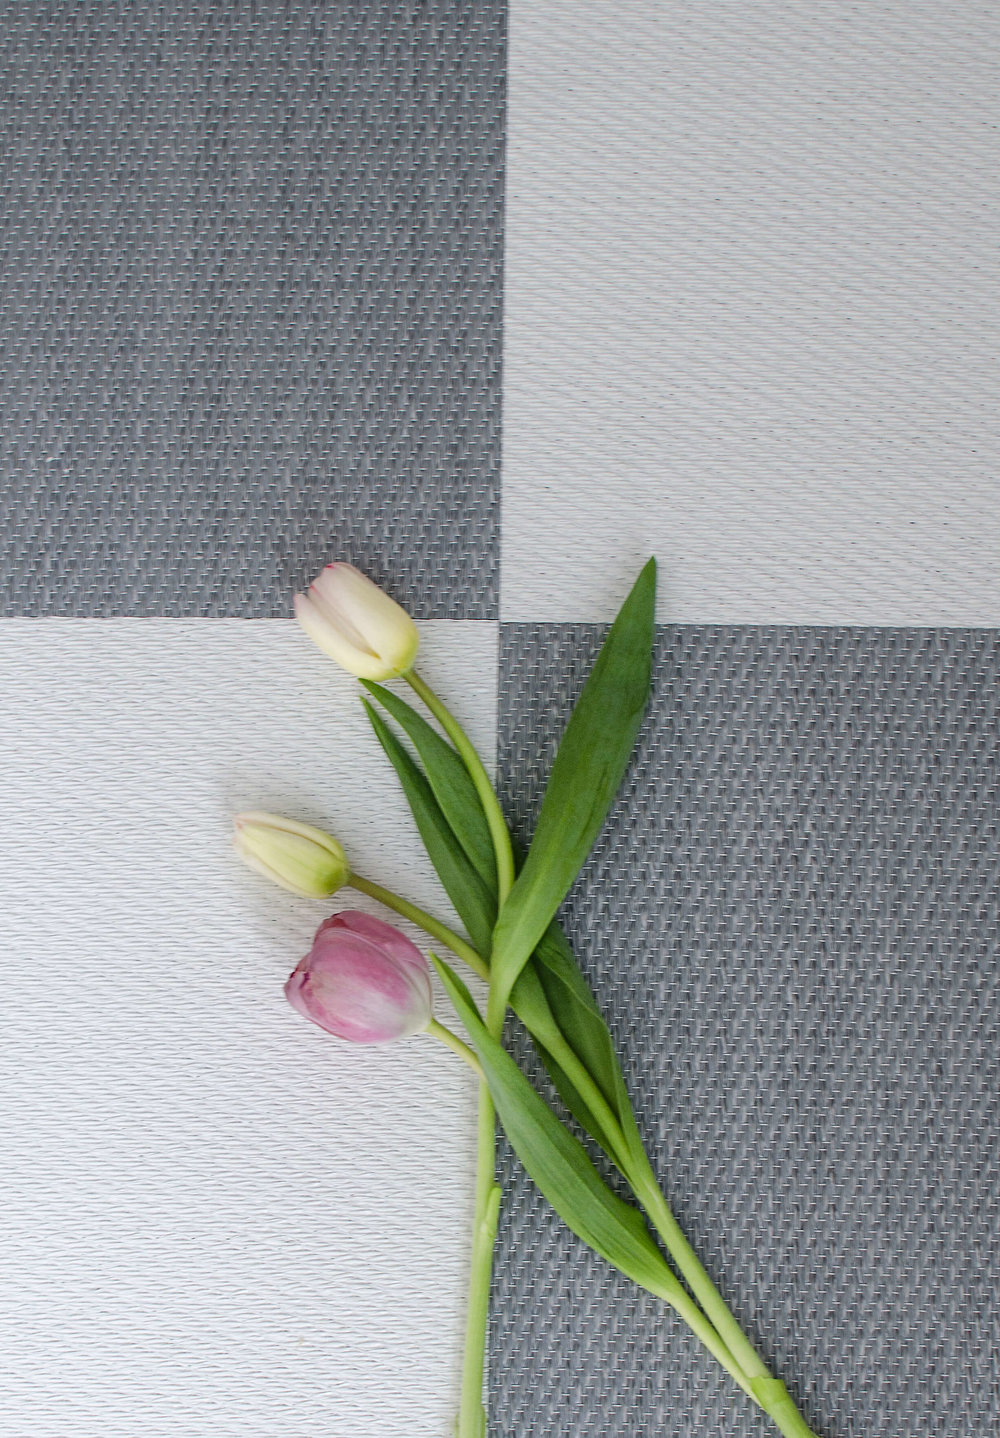 TECHNICAL DETAILS - Type of floor covering: Woven vinylMaterial: 97 % vinyl, 3 % polyesterMaterial weight: Rolls with packing 3000 g/m2 | Tiles with packing 4000 g/m2Total thickness: 3 mm (rolls), 4 mm (tiles)Sound insulation: ∆ Lw 17 DBDelivery format: rolls and tilesDelivery size: Roll width 2m, 70 cm, 50 cm | Roll length 25-50 meters / roll | Roll diameter 30 cm / 25 m length roll | Tile width x length 50x50 cm, 25x25, 100x100, 50x100, and triangles. Ask more sizes.Colour fastness to light: 8 (SFS-EN-ISO 105-B02: 2014)Castor chair resistance: > 25 000 cyclesInflammability: A2 (fl) B (fl)Smoke production: Class S1Dimensional stability: < 0,03 %Curling: 0 mmThickness loss: 0,02 mmUnderfloor heating: Can be installed on the underfloor heating system.Usage: Public places like hotels, offices, schools, medical practices, gyms, shops. Residential use like kitchen, bathroom, living room etc.